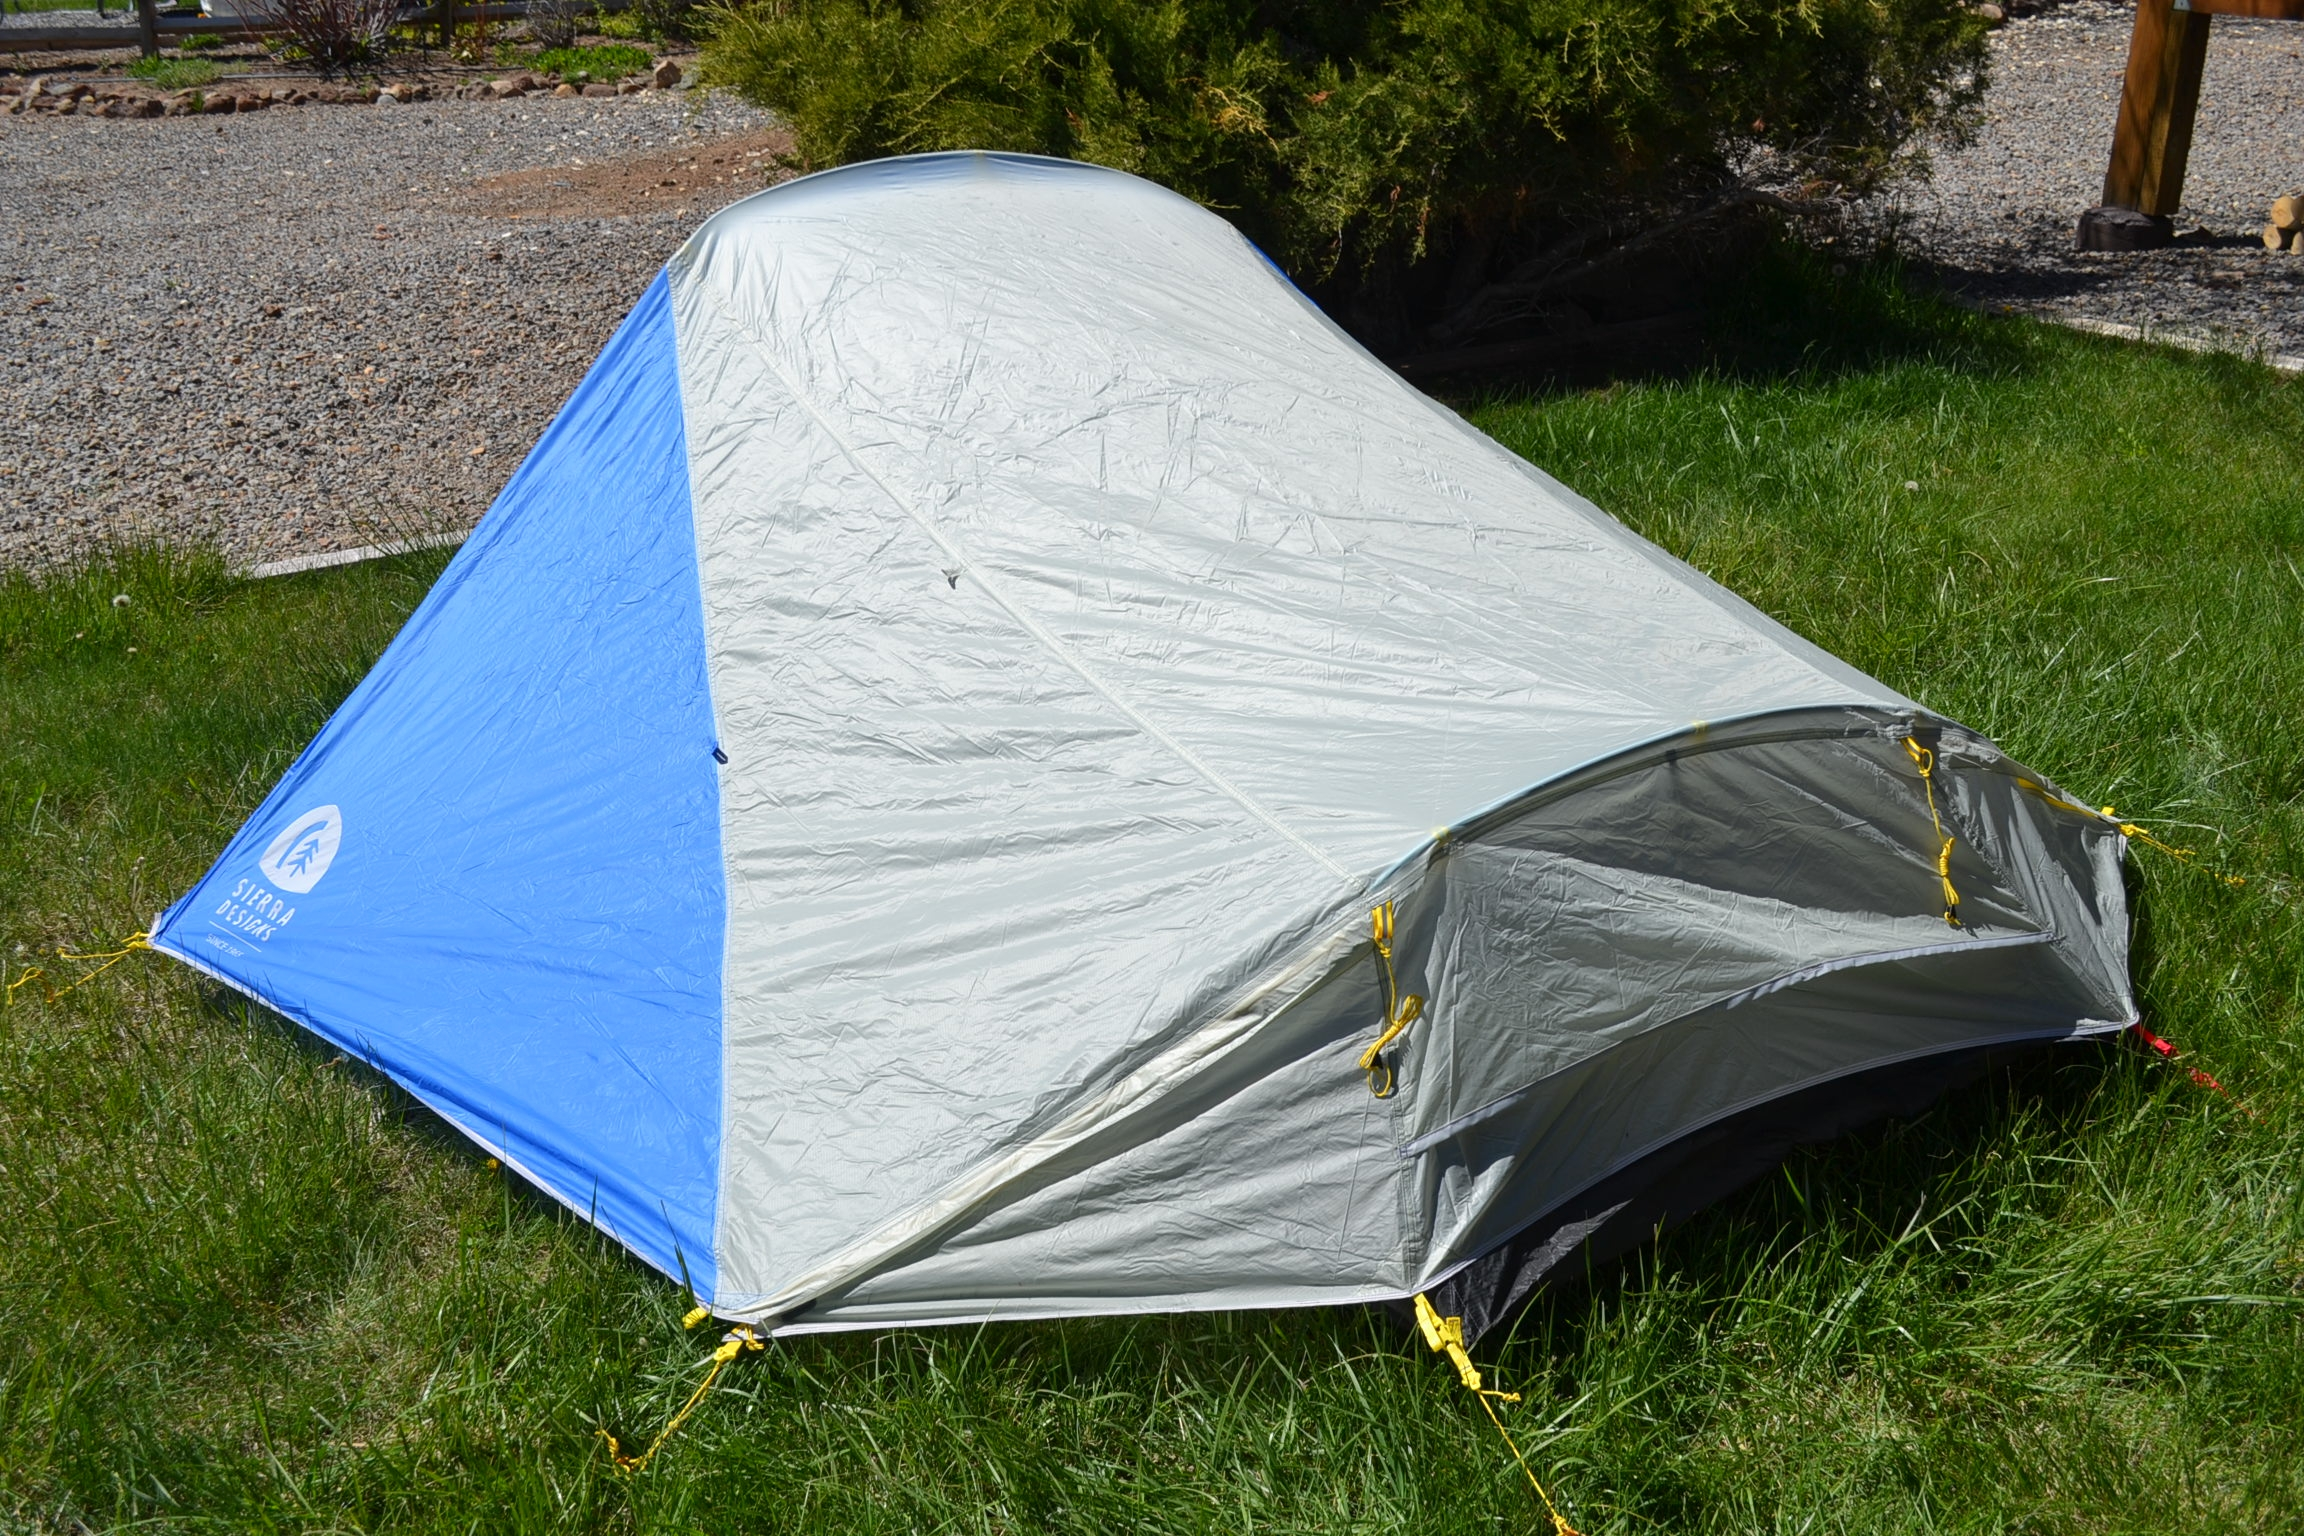 Sierra Designs High Side 2 Tent - at a glance